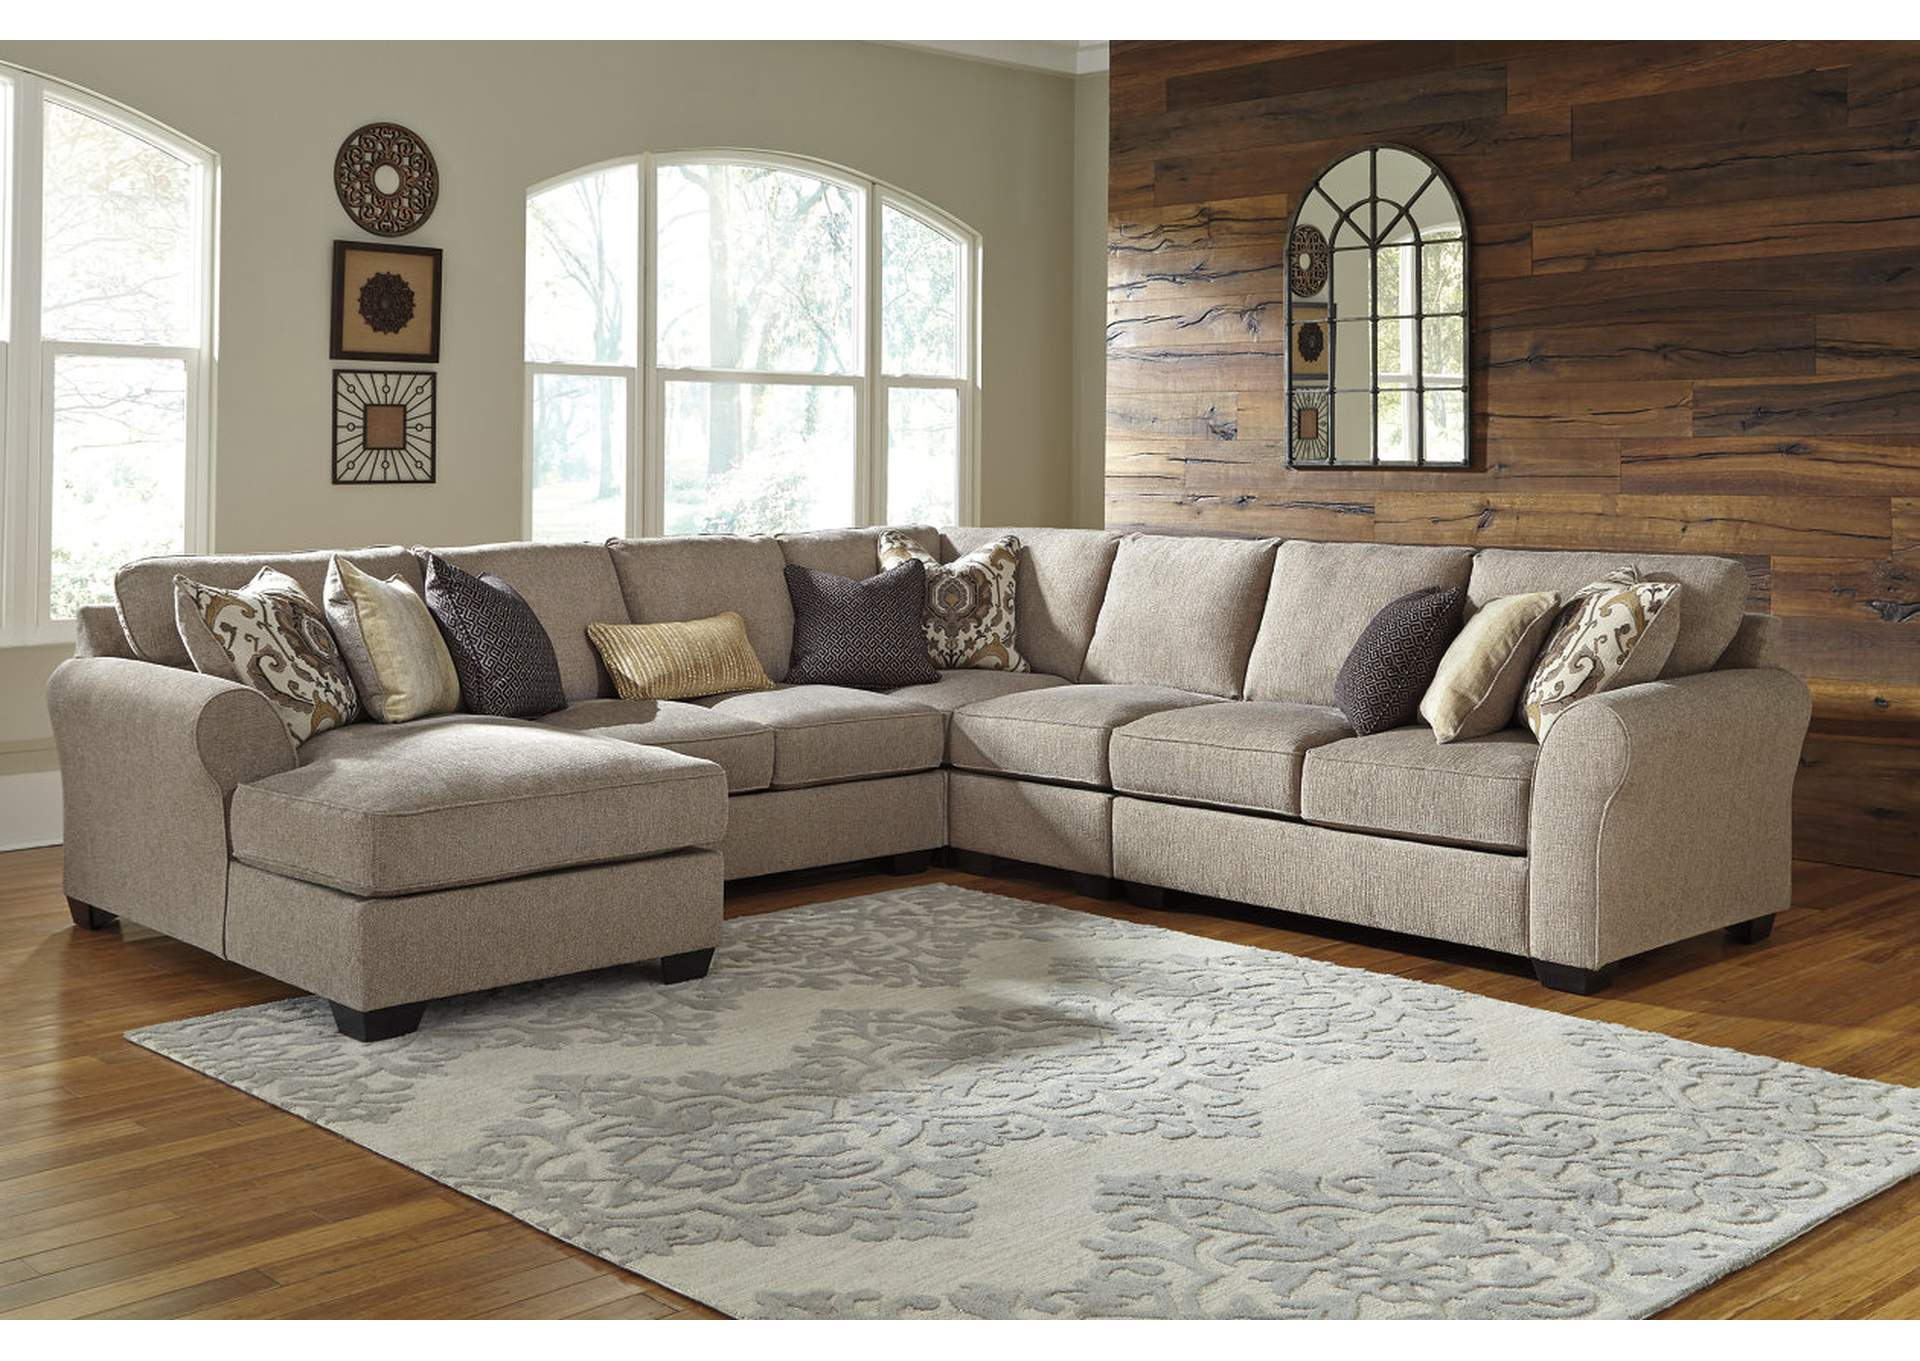 Pantomine Driftwood Extended Sectional w/Left Facing Corner Chaise,Benchcraft